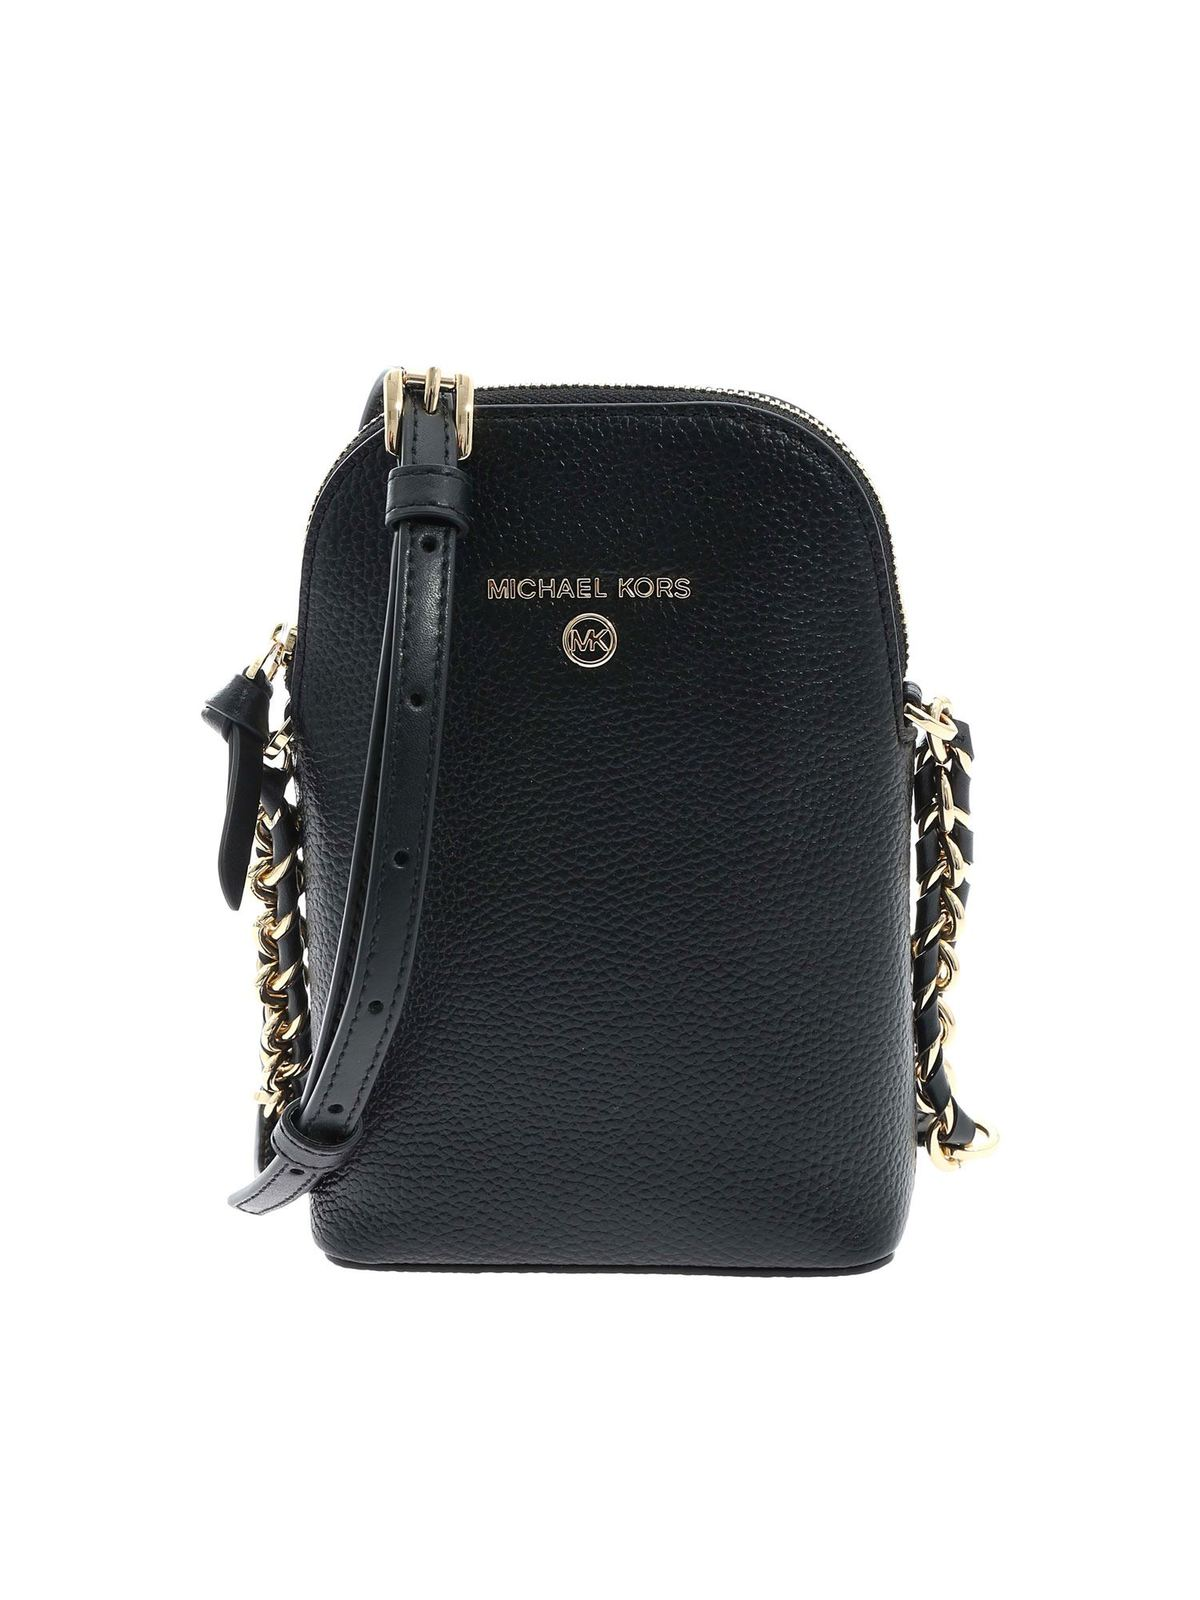 Michael Kors LEATHER SHOULDER BAG IN BLACK